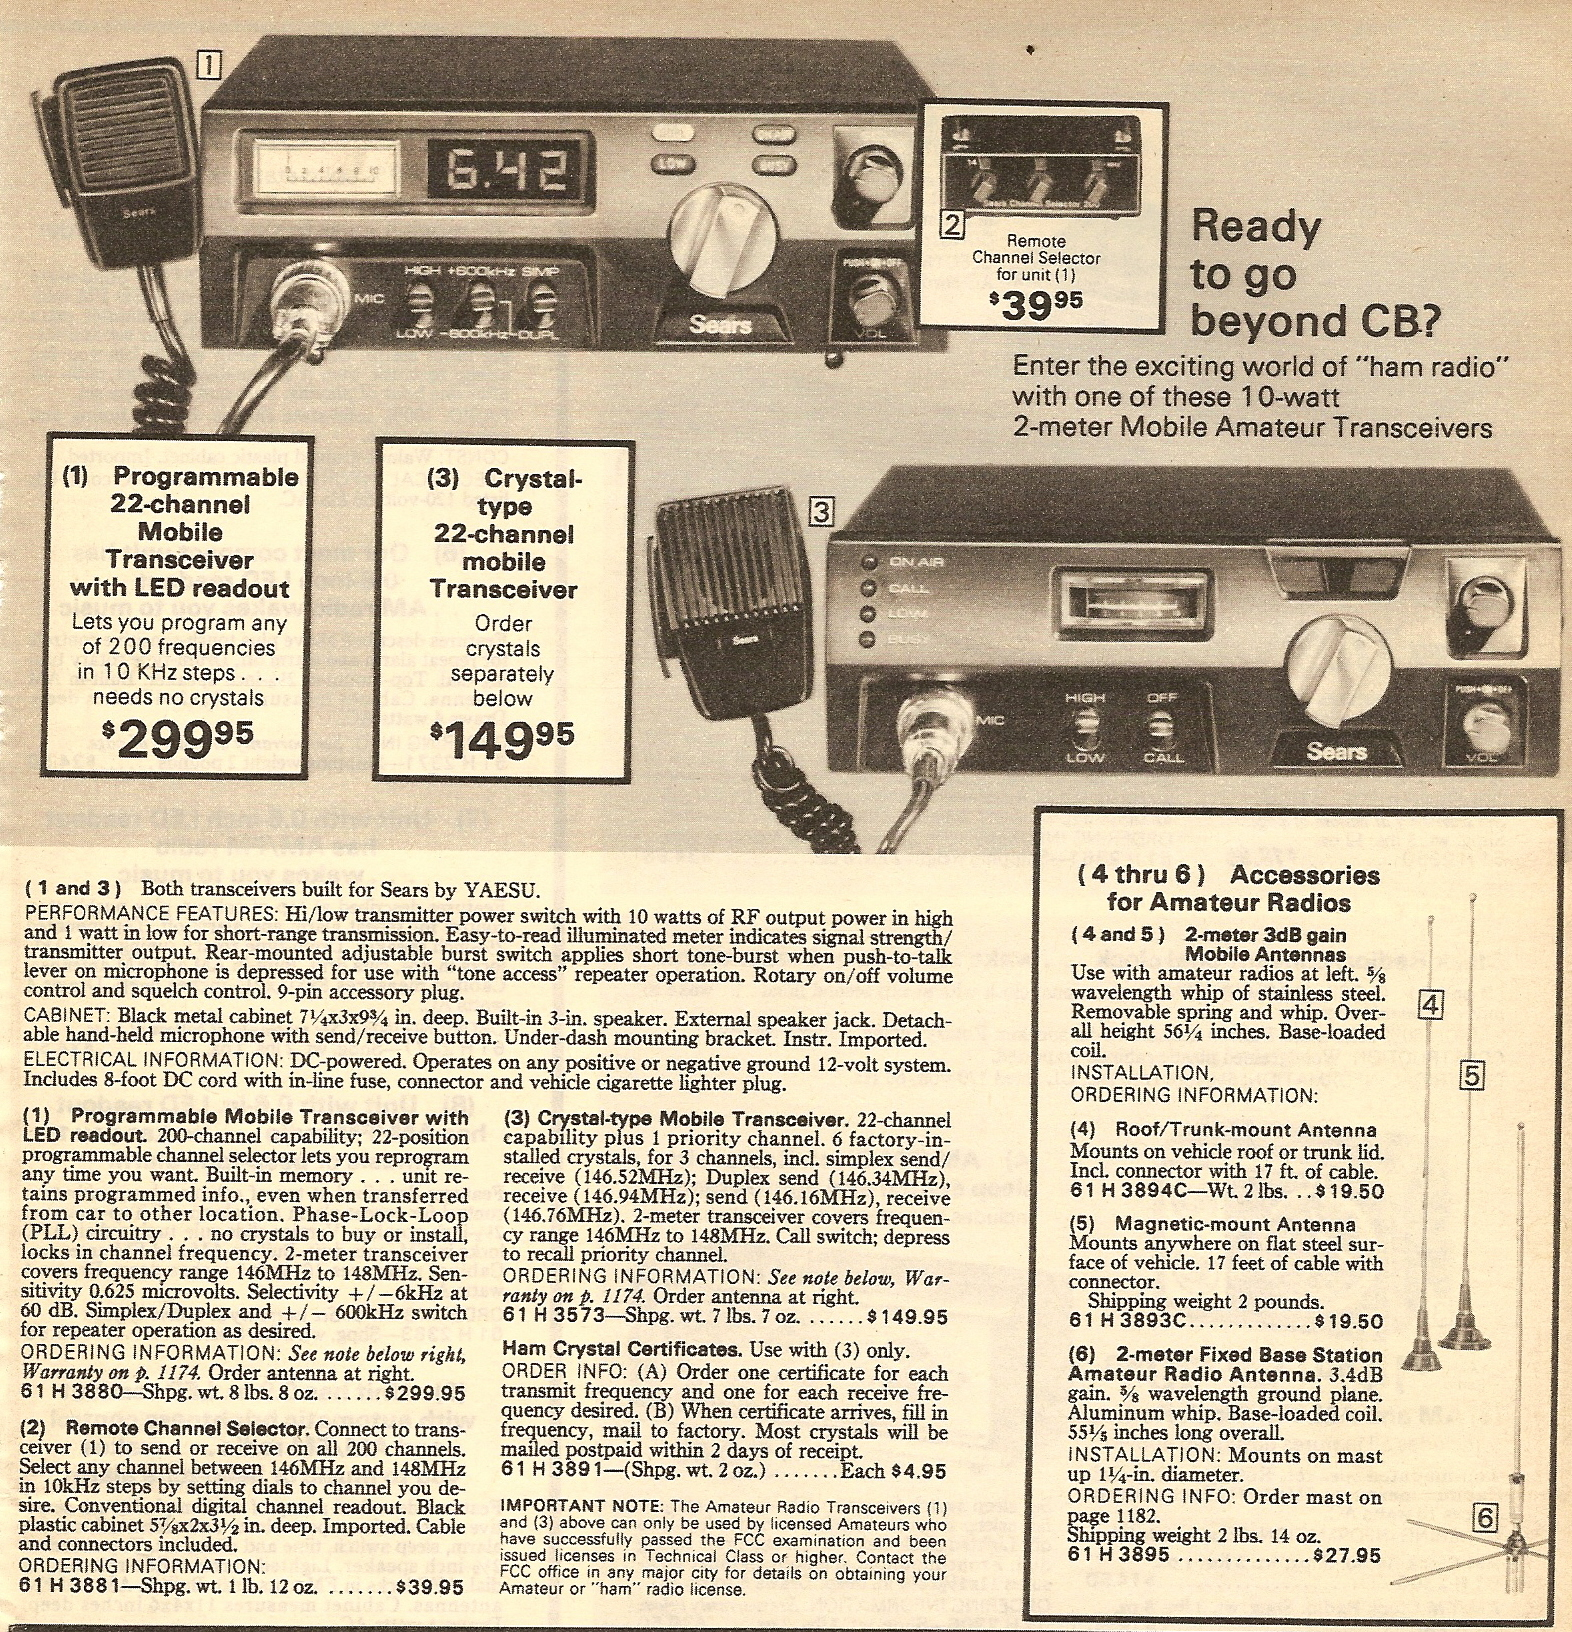 (Musen means = Wireless in Japanese). Sears Catalog 1978 showing both models